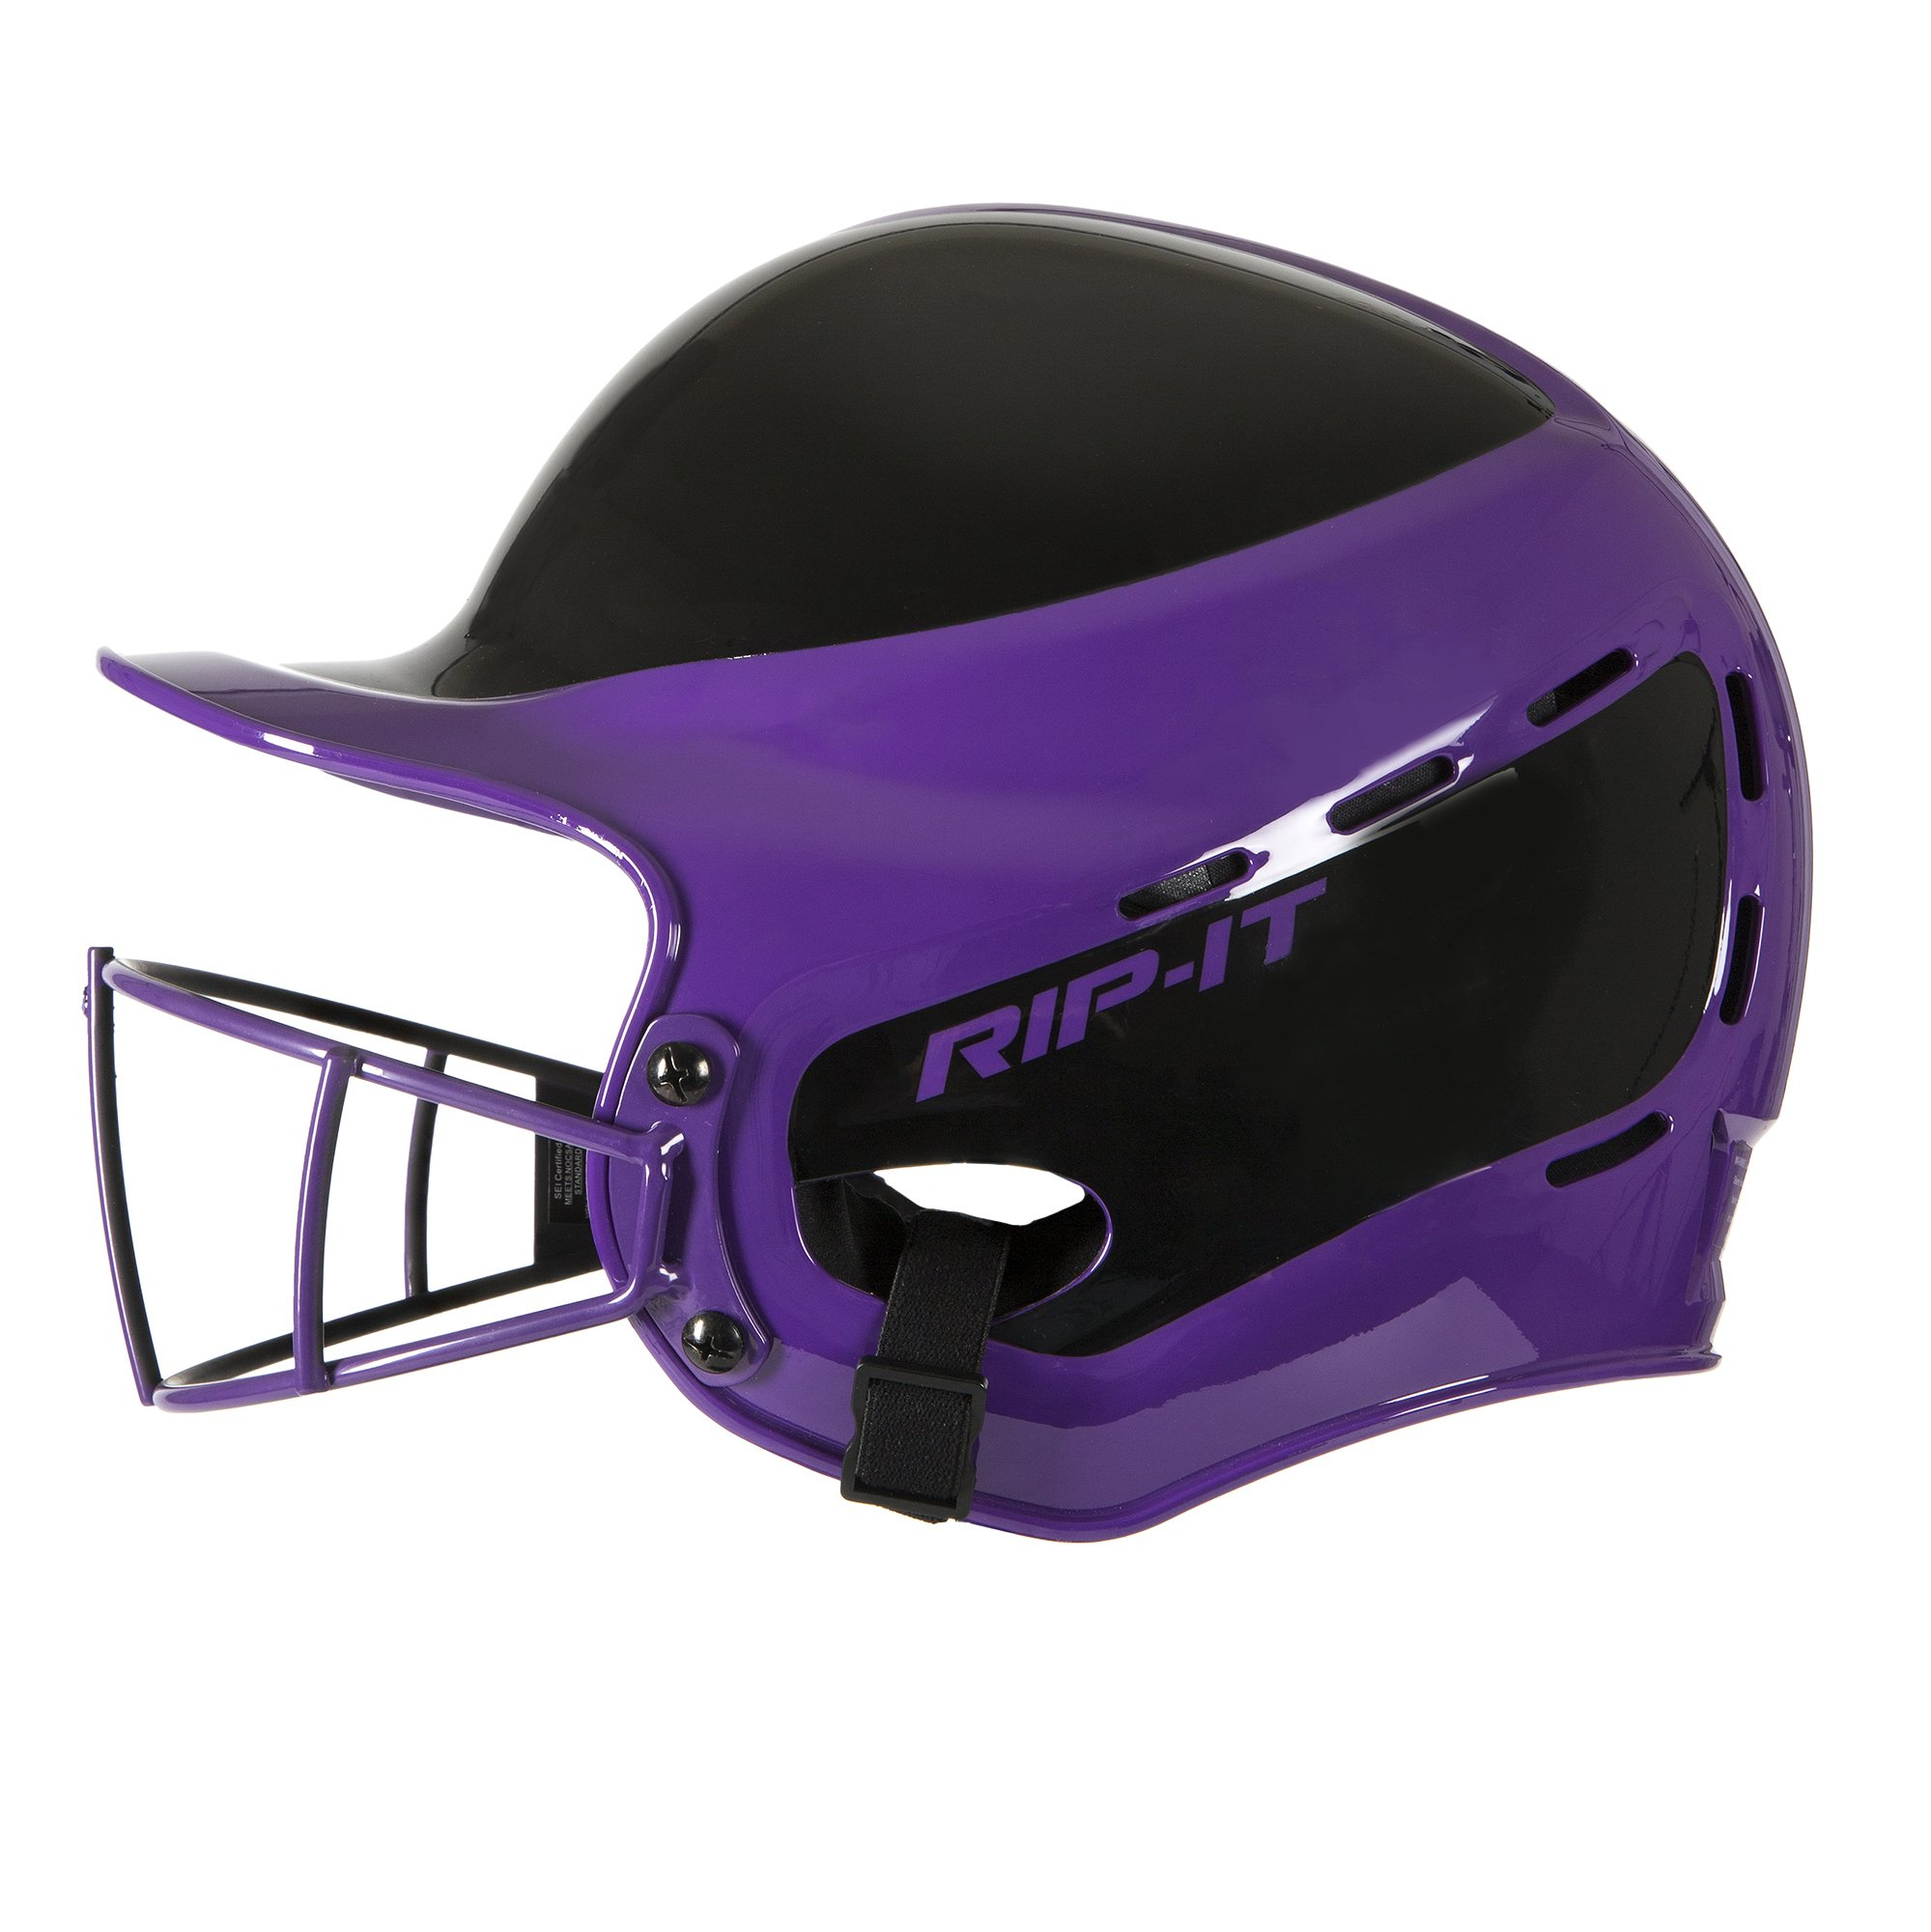 Rip-It Vision Pro Away Softball Batting Helmet (Away Purple, Extra Large) by RIP-IT